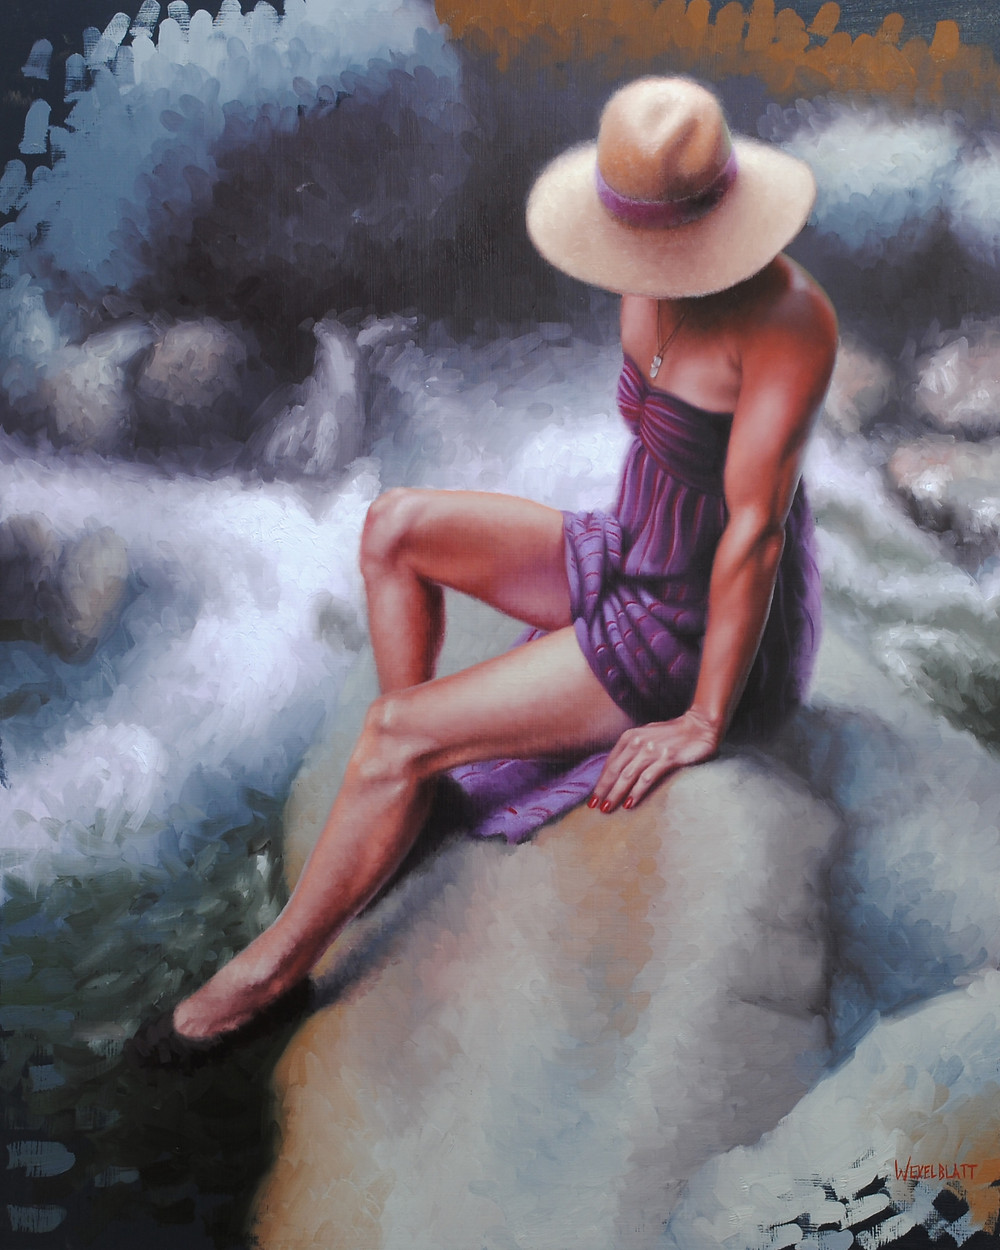 This is a figure painting from The Esalen Institute near Big Sur, California